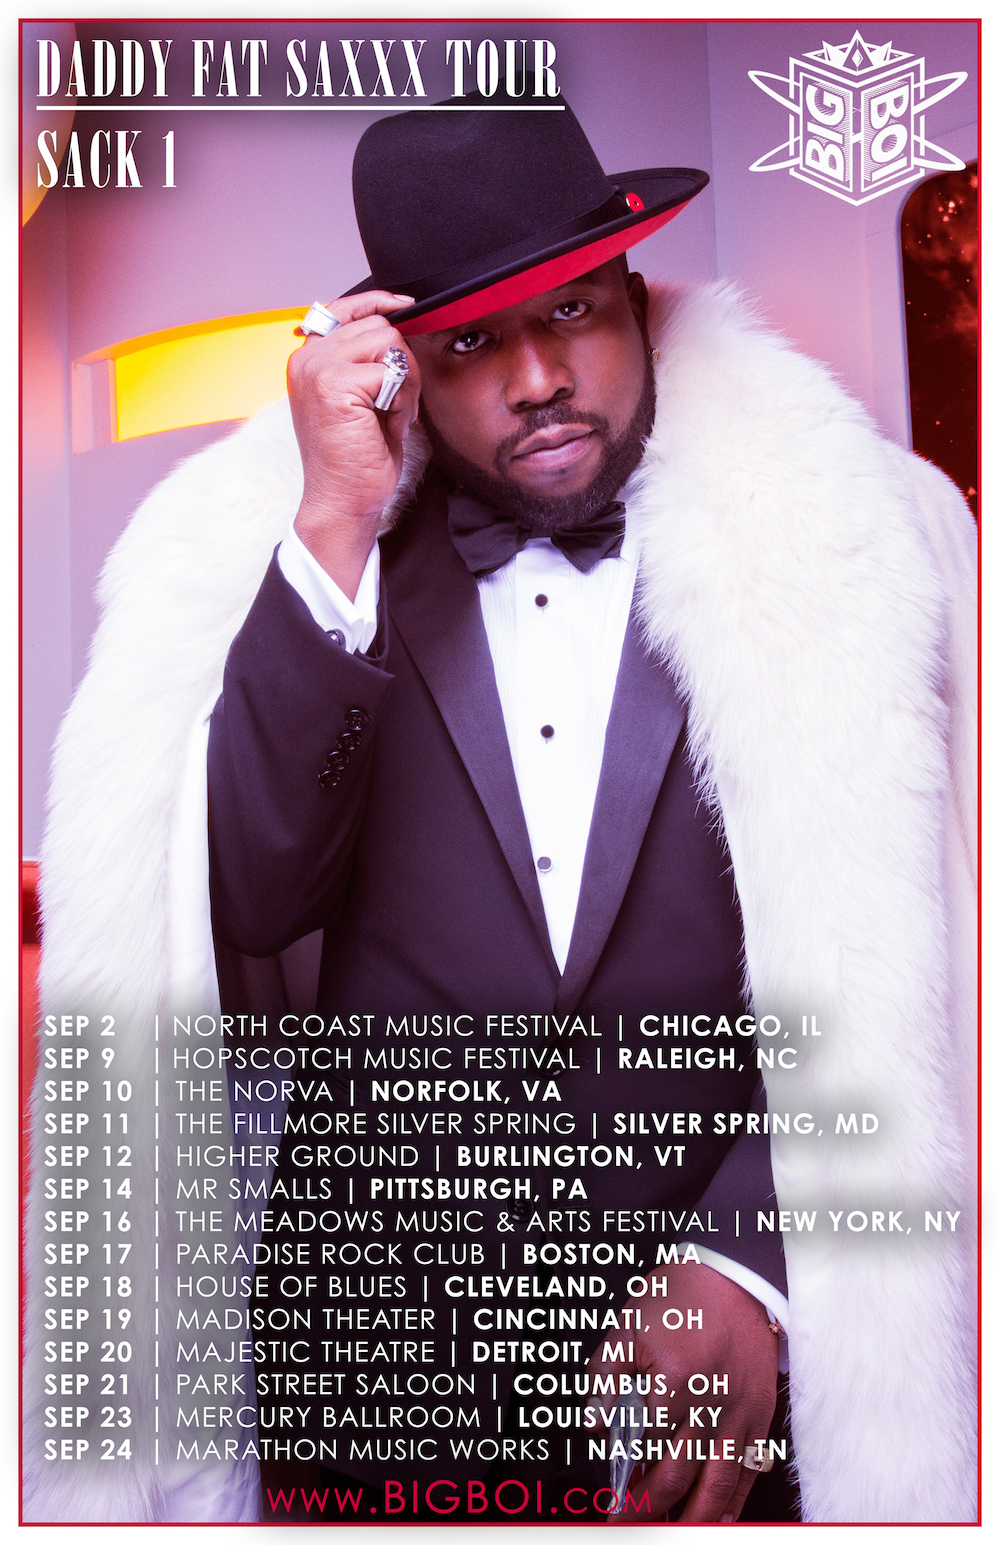 big boi 1 Big Boi announces US Daddy Fat Saxxx Tour